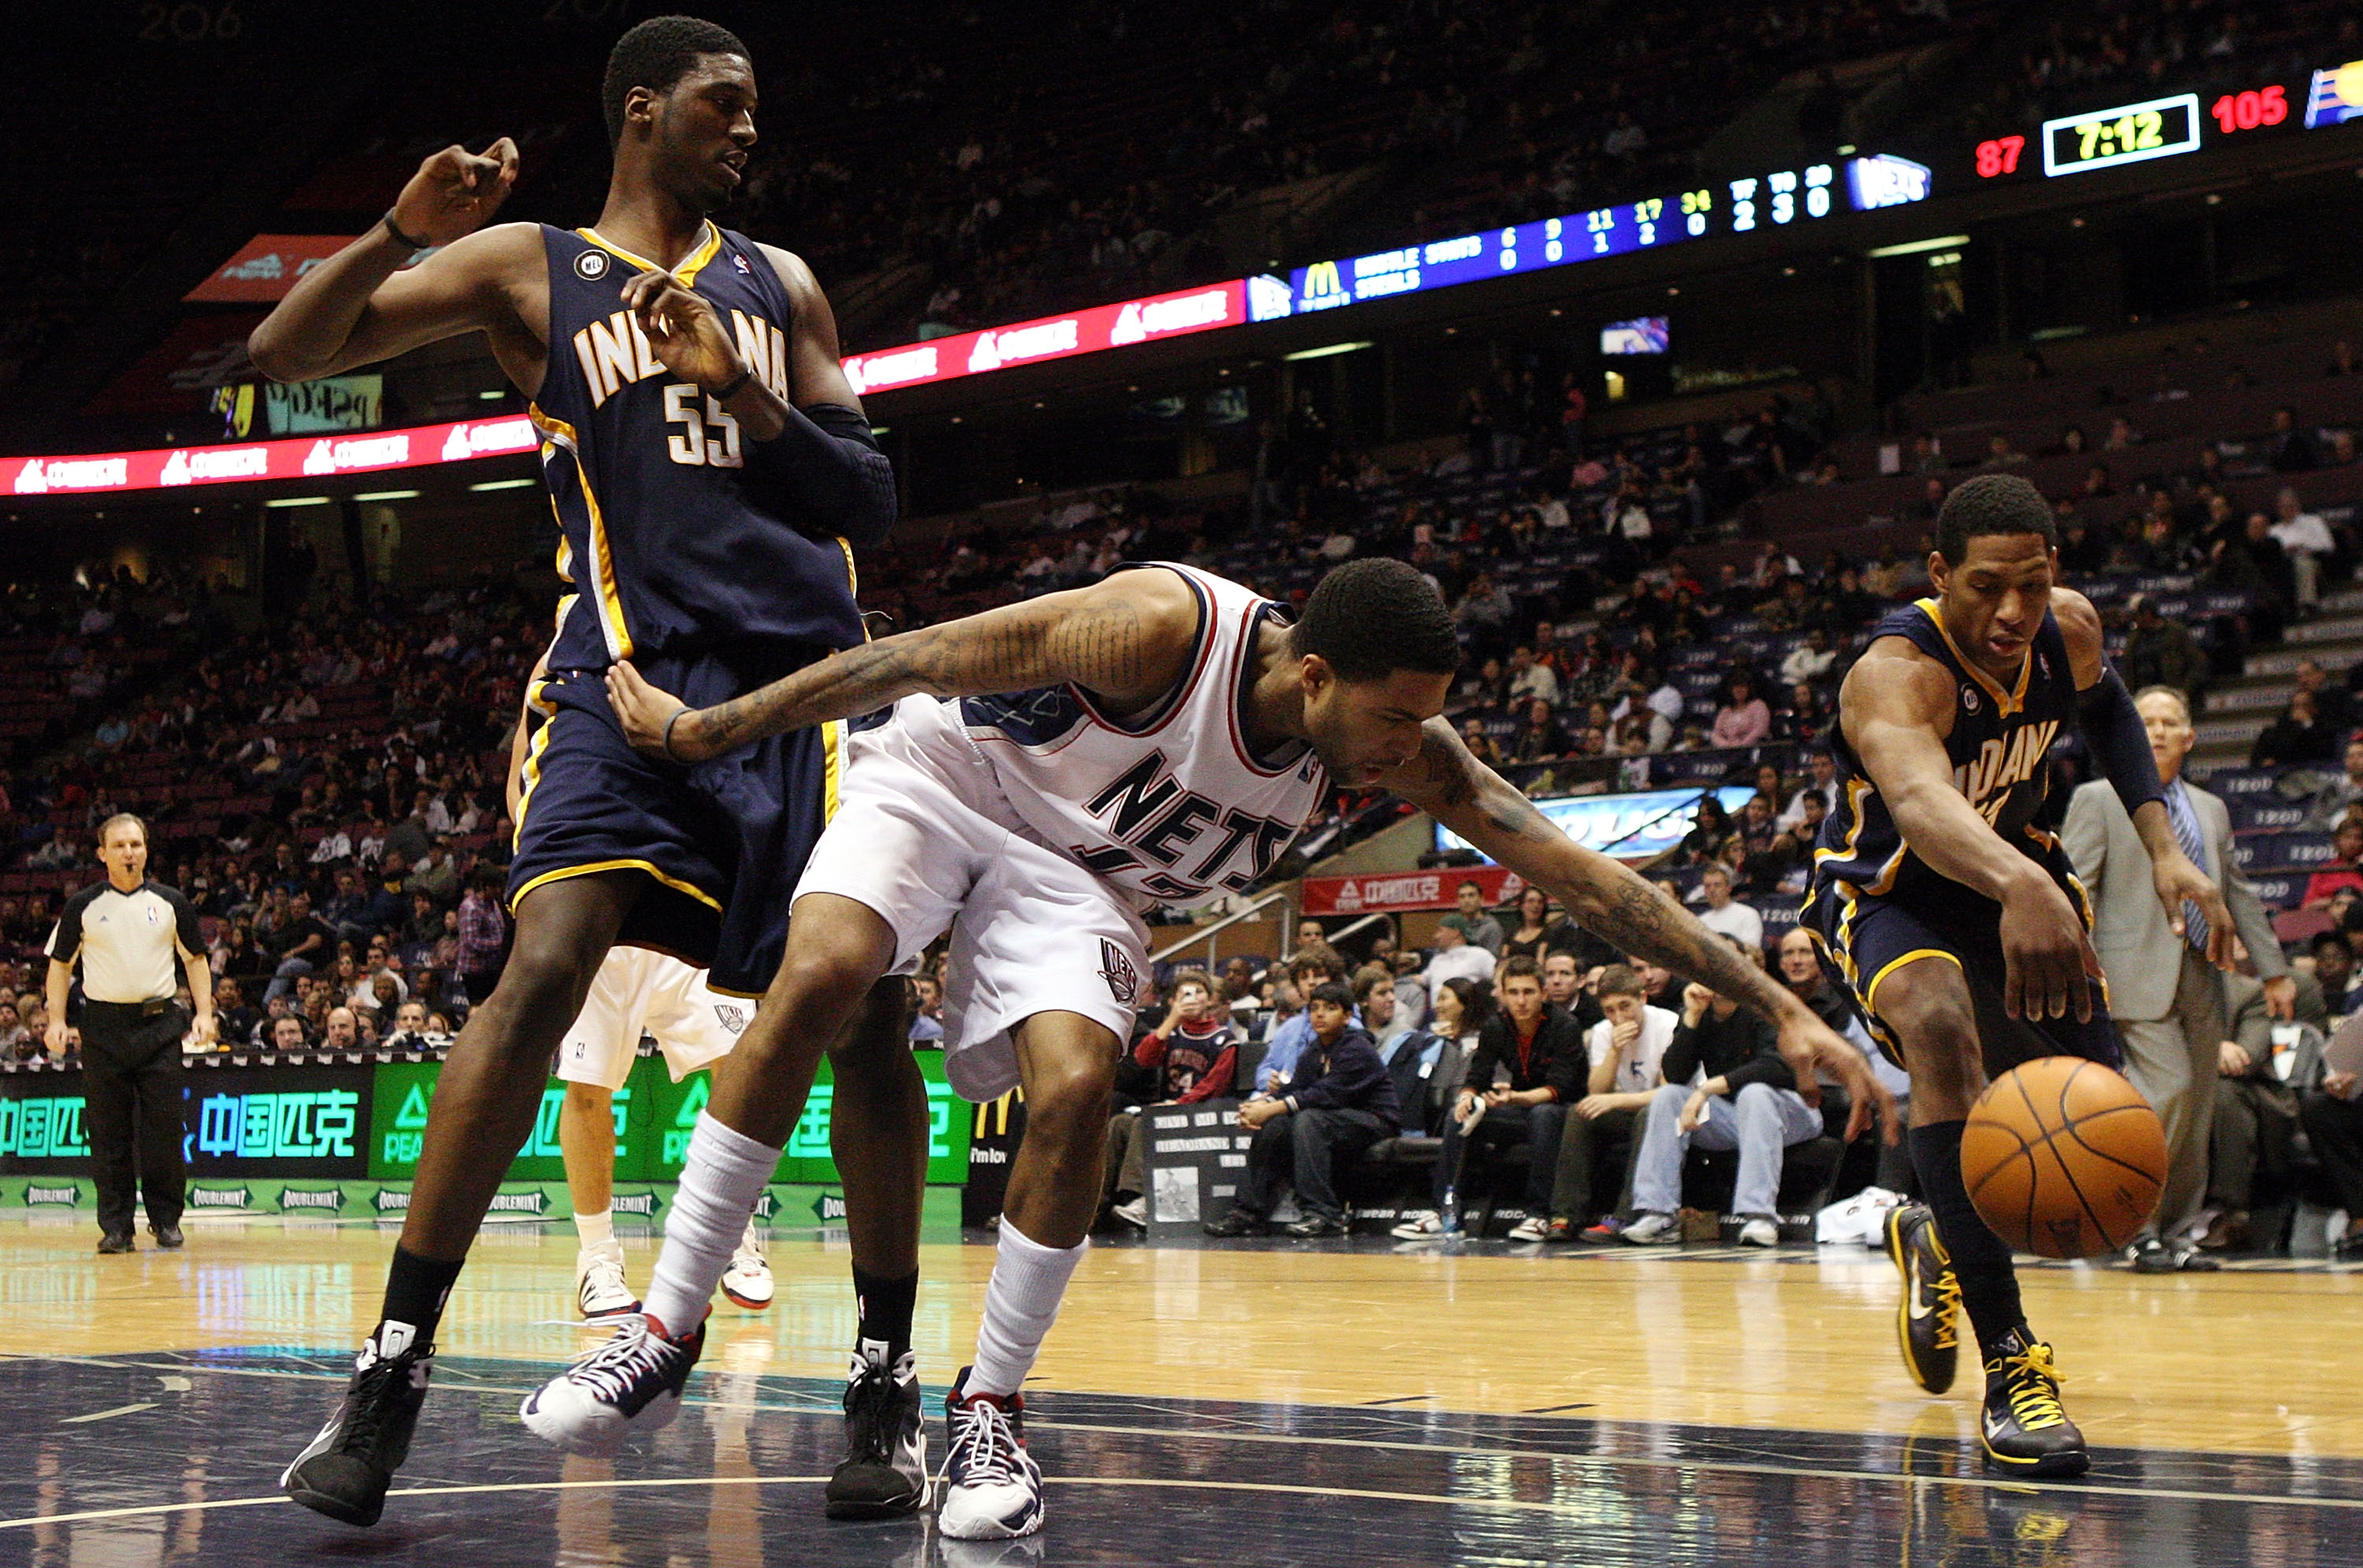 EAST RUTHERFORD, NJ - JANUARY 15:  Chris Douglas-Roberts #17 of the New Jersey Nets loses the ball against Danny Granger #33 and Roy Hibbert #55 of the Indiana Pacers at the Izod Center on January 15, 2010 in East Rutherford, New Jersey. NOTE TO USER: Use